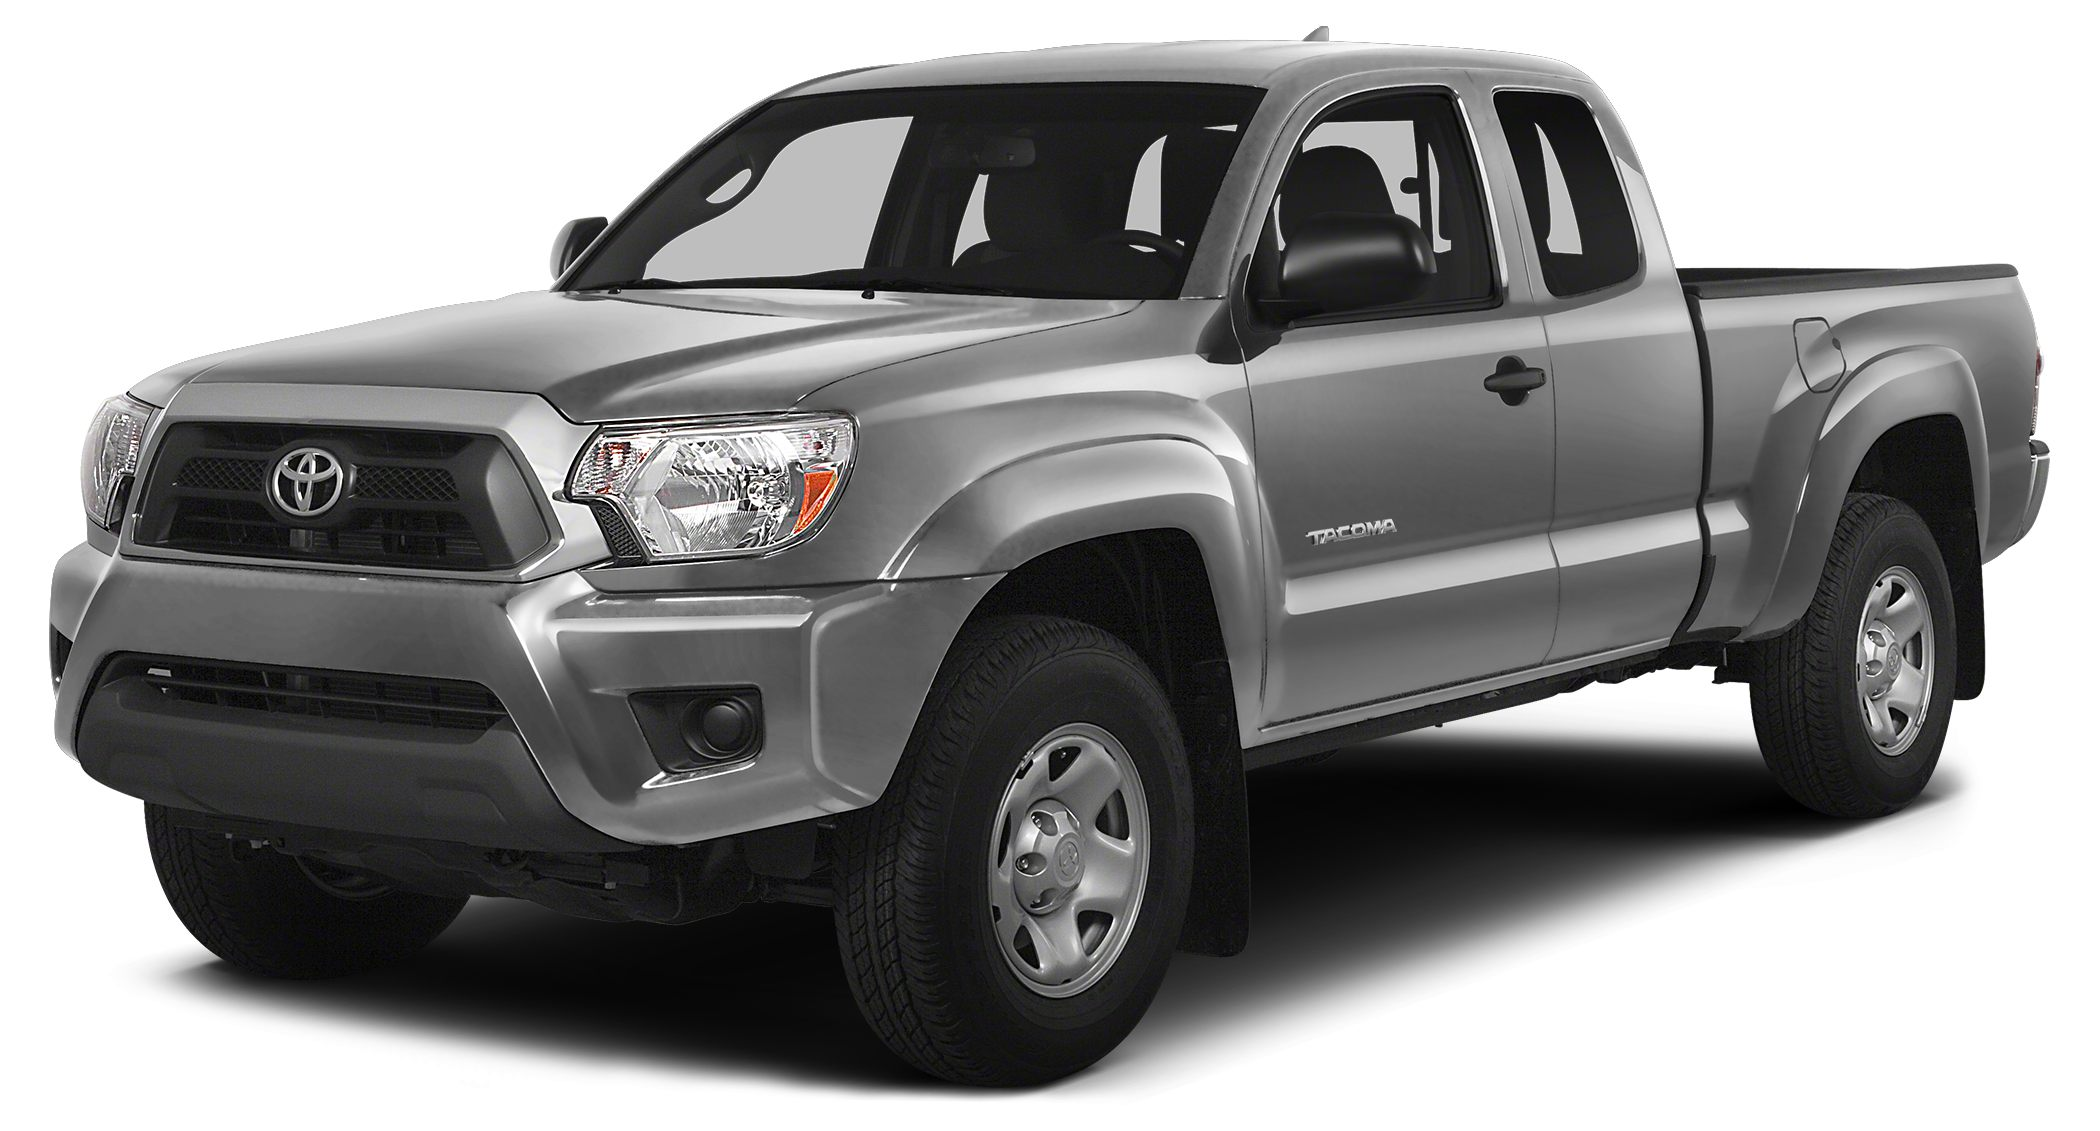 2013 Toyota Tacoma Base Recent Arrival 2013 Toyota Tacoma RWD 4-Speed Automatic with Overdrive 2